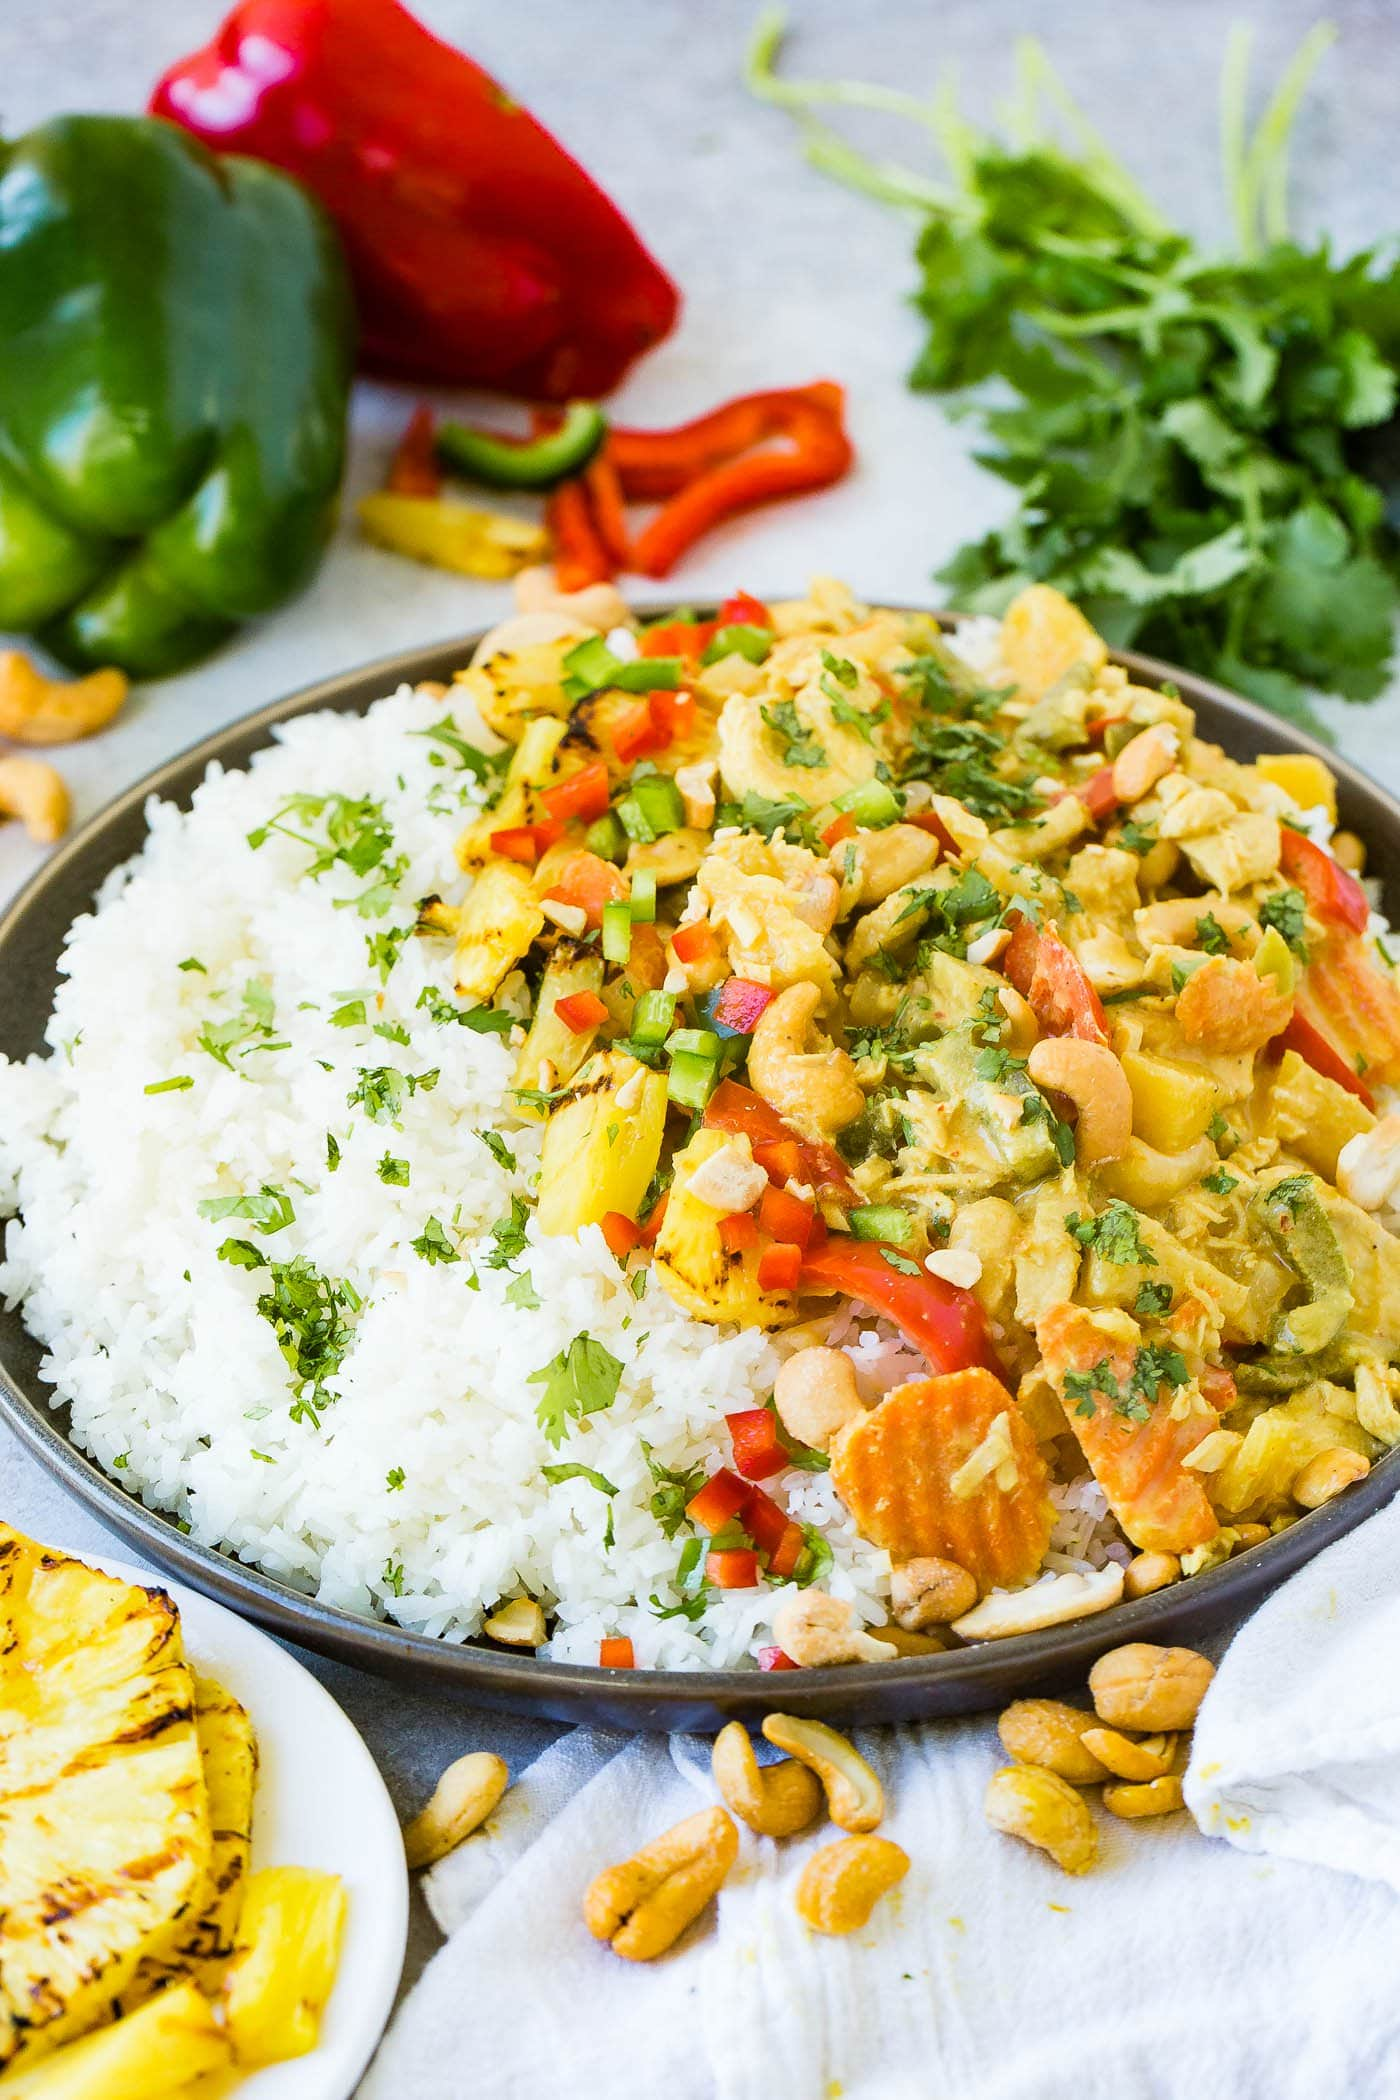 a plate with jasmine white rice piled with a creamy pineapple coconut curry sauce, peppers, onions and cashews with grilled pineapple